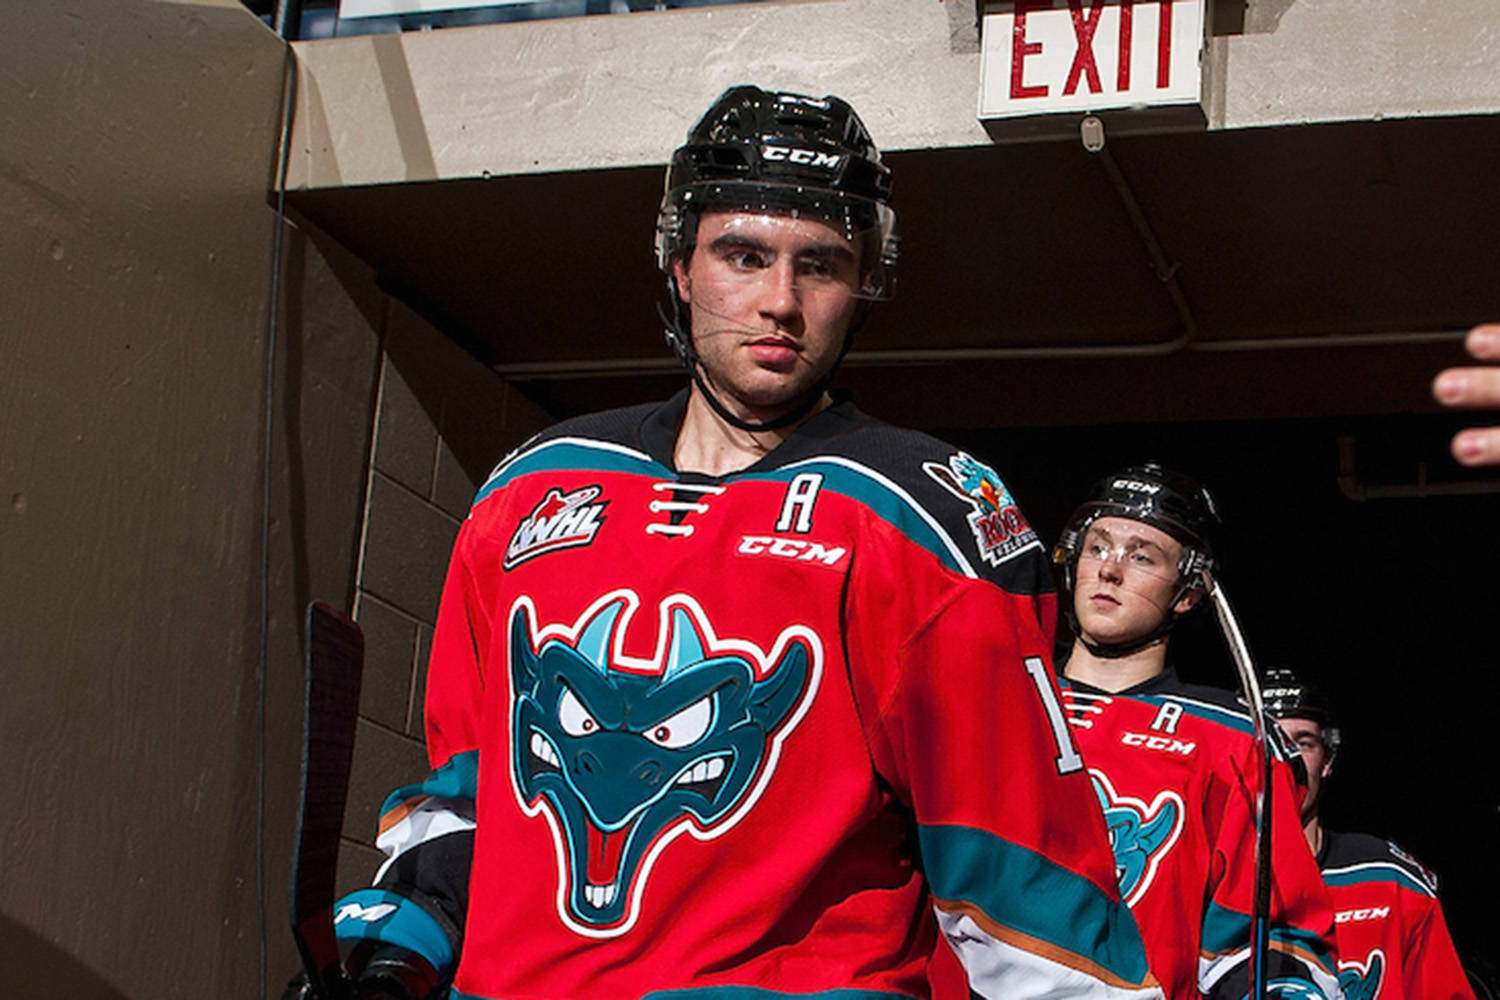 Dillon Dube #19 of the Kelowna Rockets leads the team through the tunnel to the ice against the Calgary Hitmen on October 13, 2017 at Prospera Place in Kelowna, British Columbia, Canada. - Image: Marissa Baecker/Shoot the Breeze